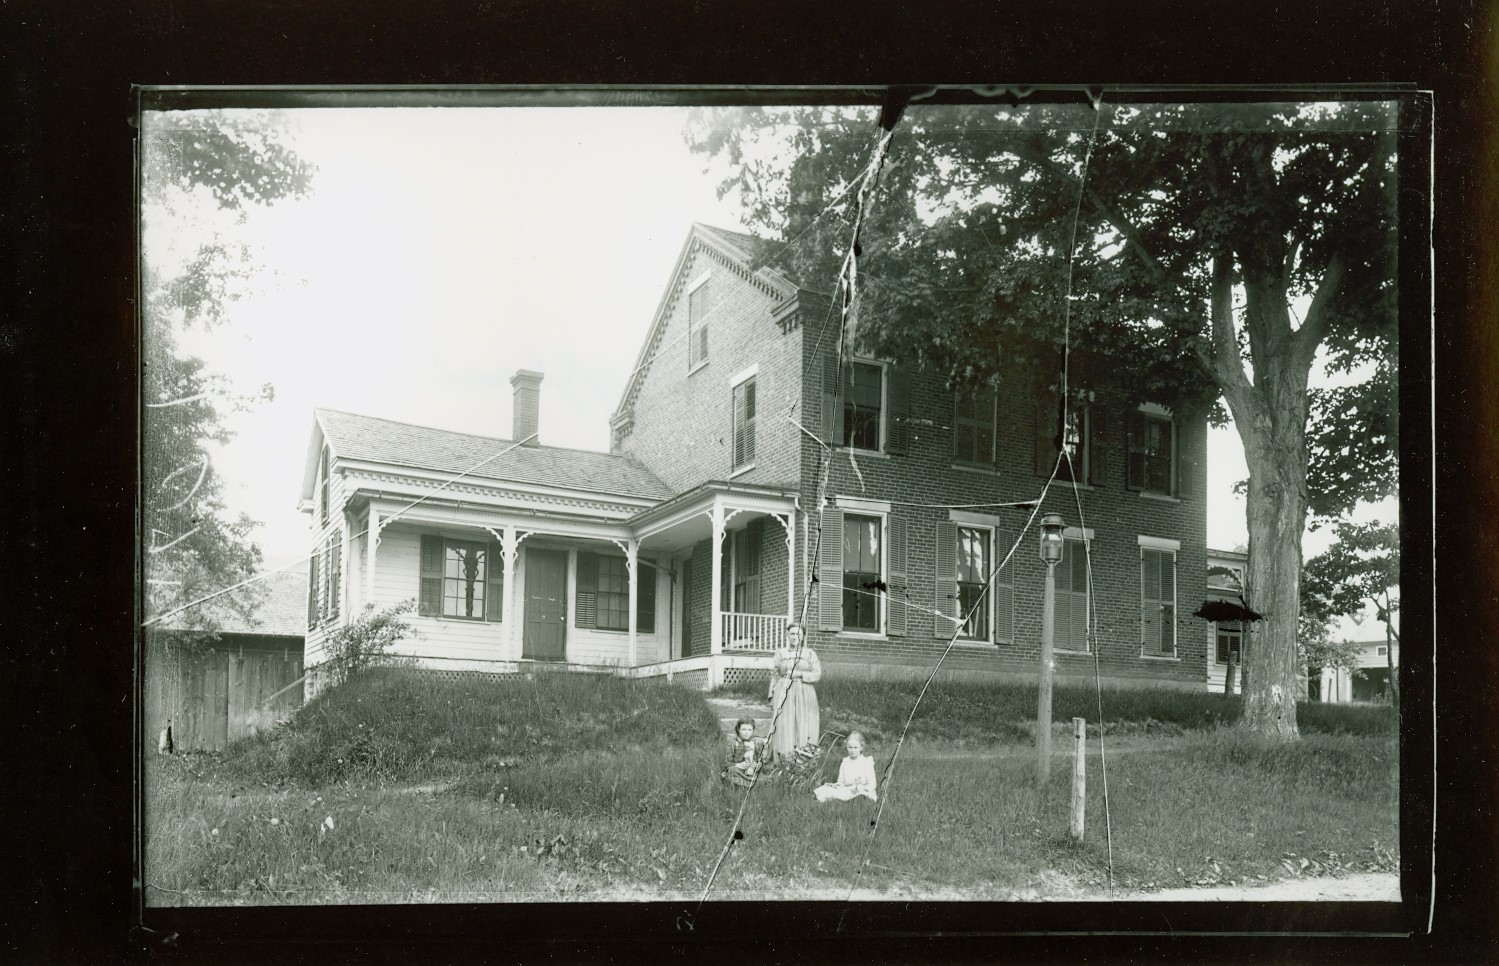 Fred Sherman-op. Library, 224 College Highway, burned 1915-rebuilt, 2-family house.